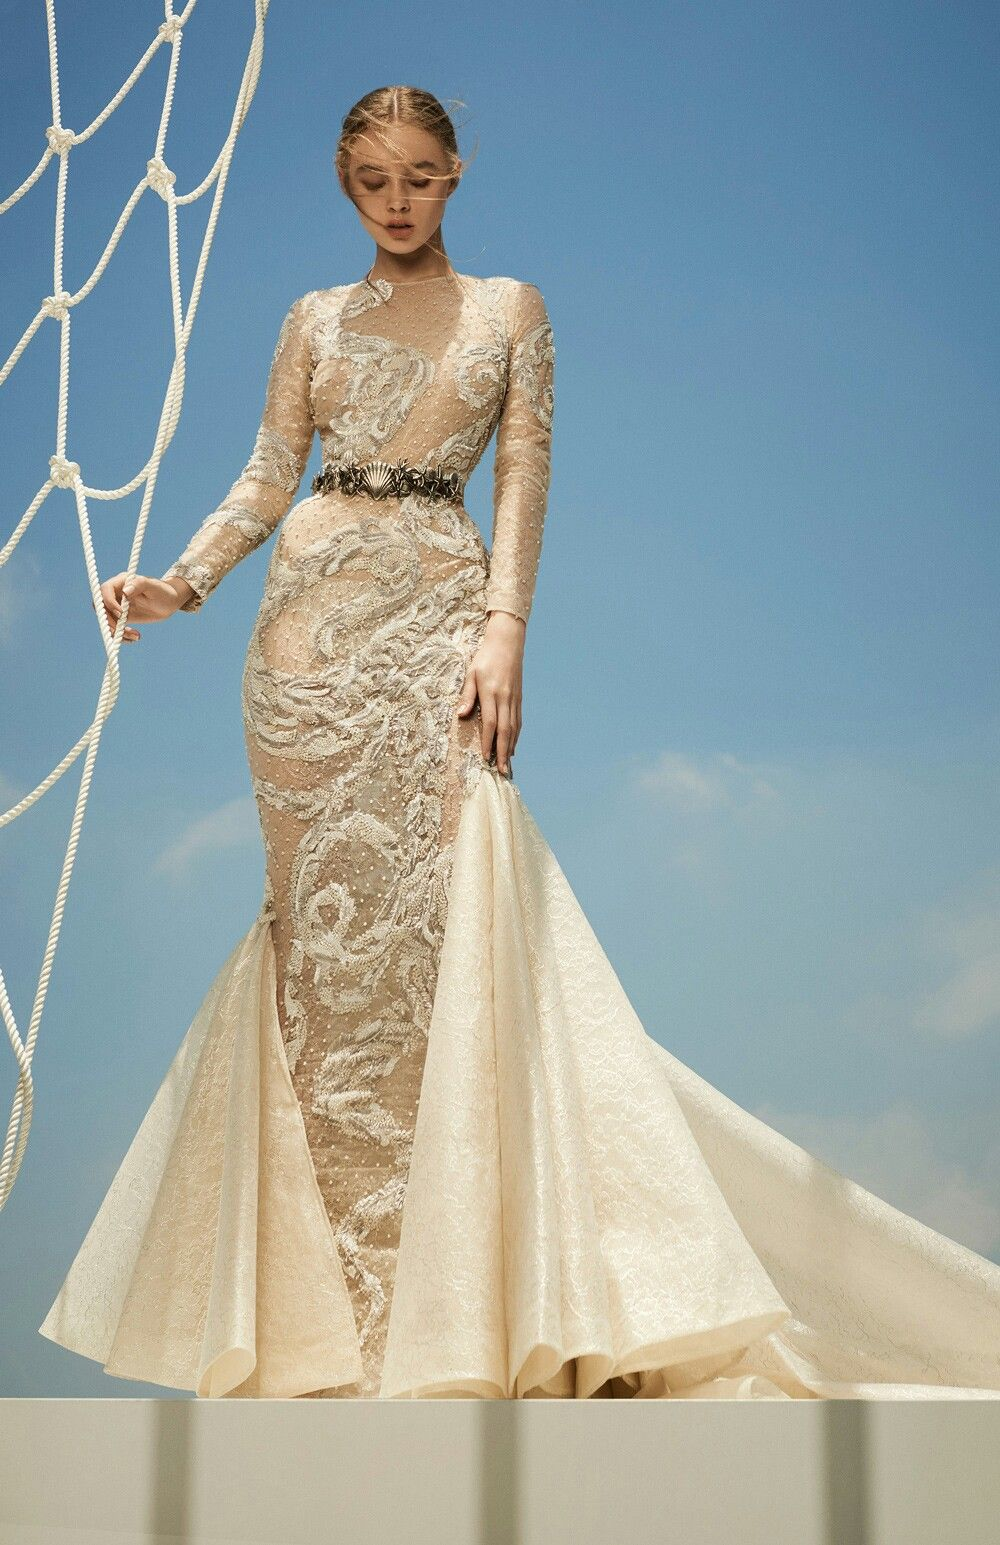 Pin by ✌☺Kathleen S. Cruikshank☺✌ on Gowns, Oh Such Beautiful ...